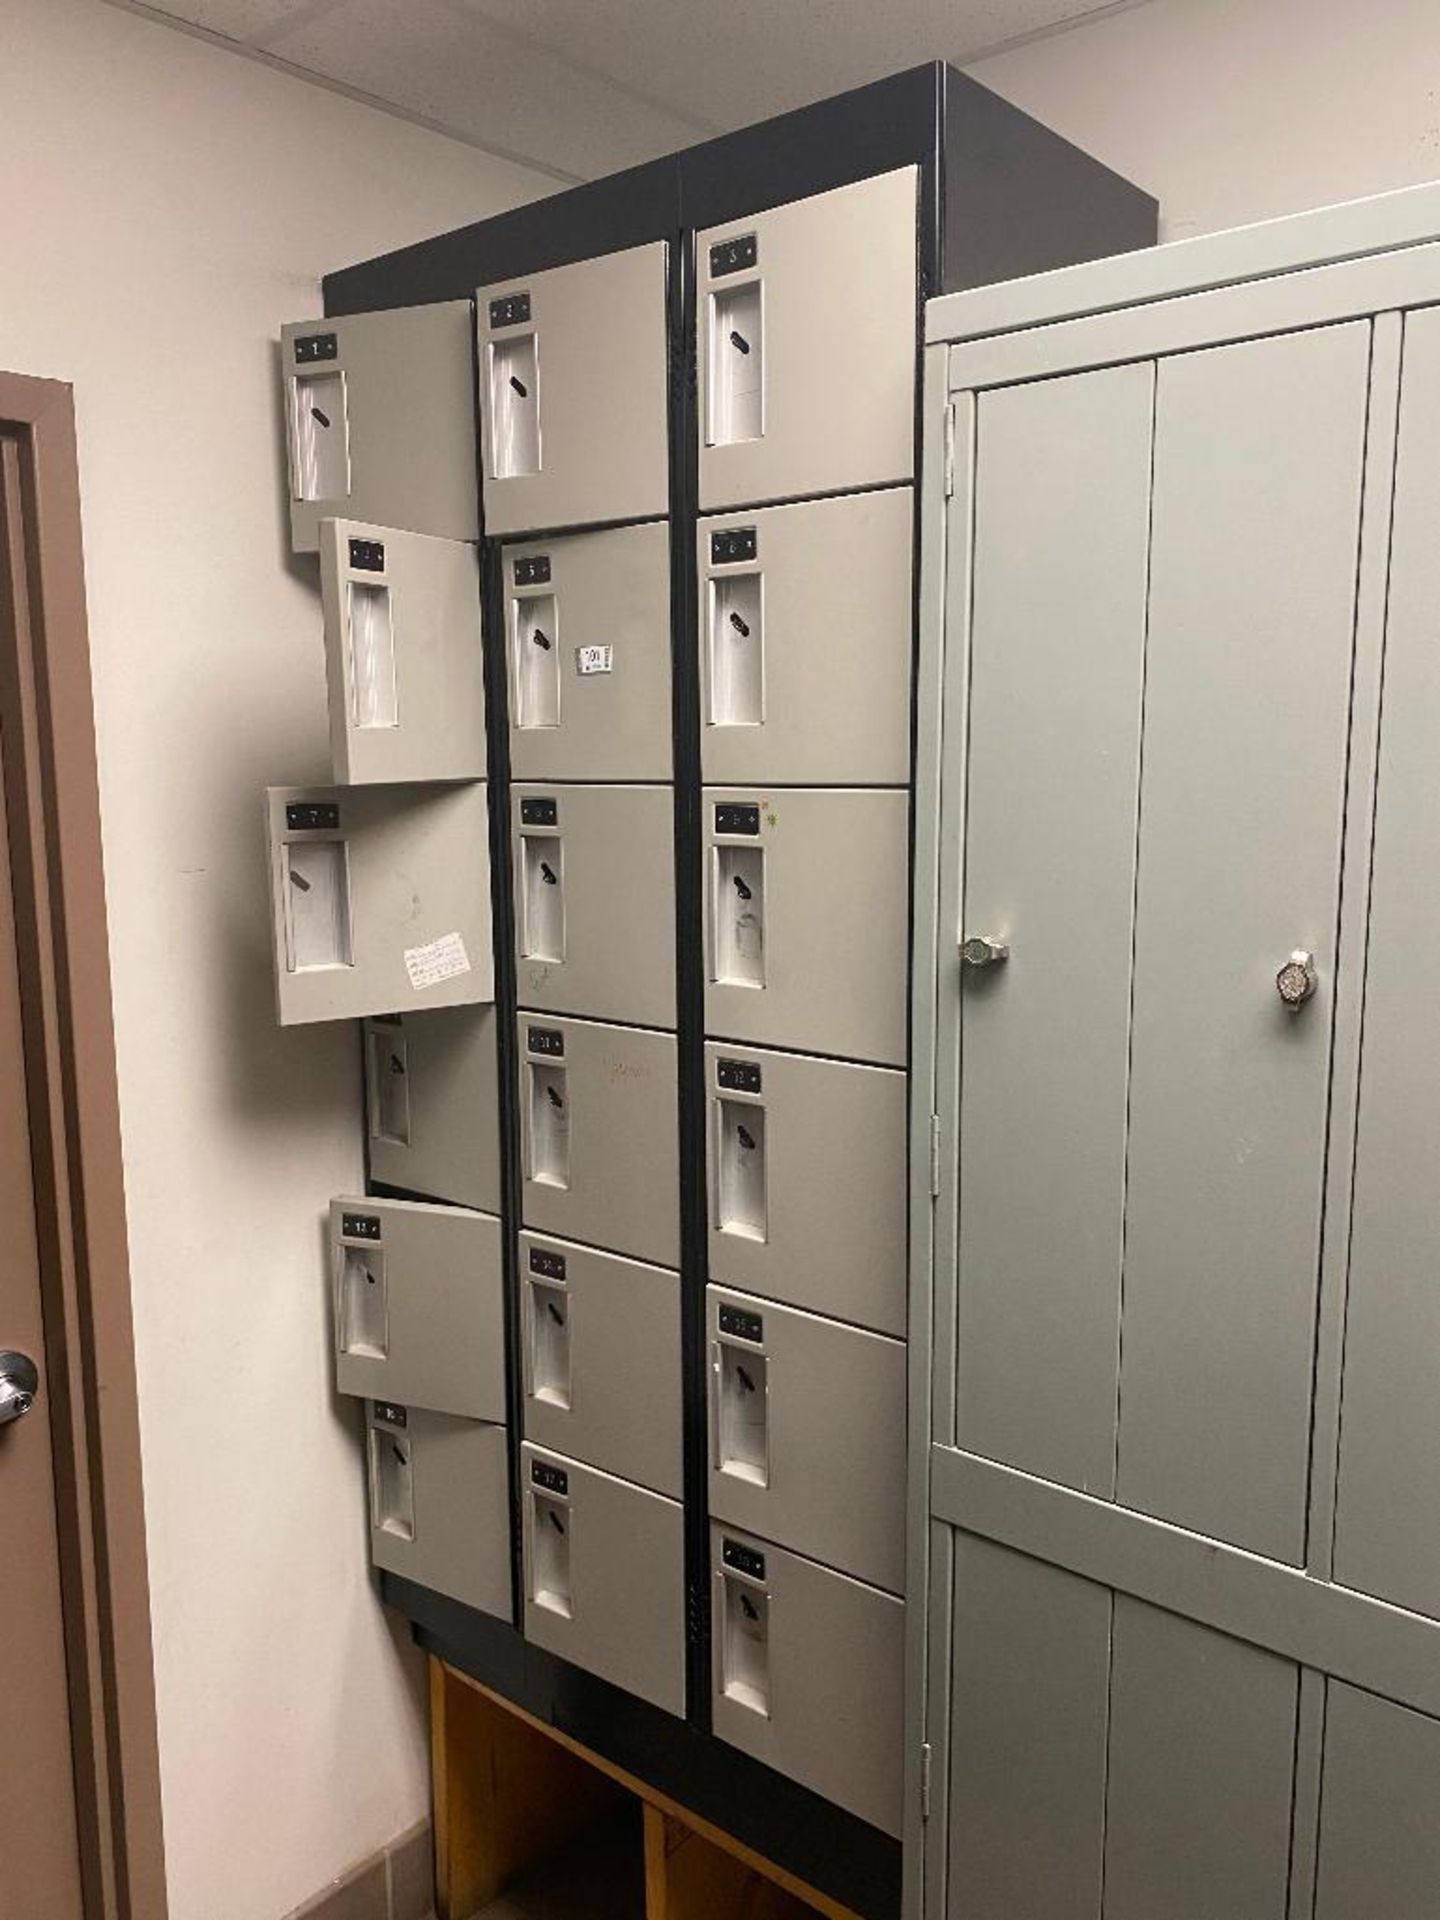 """18 SECTION CUBE LOCKERS - OVERALL: 36"""" X 18"""" X 72"""", LOCKER SIZE: 12"""" X 17"""" X 11"""" - Image 2 of 2"""